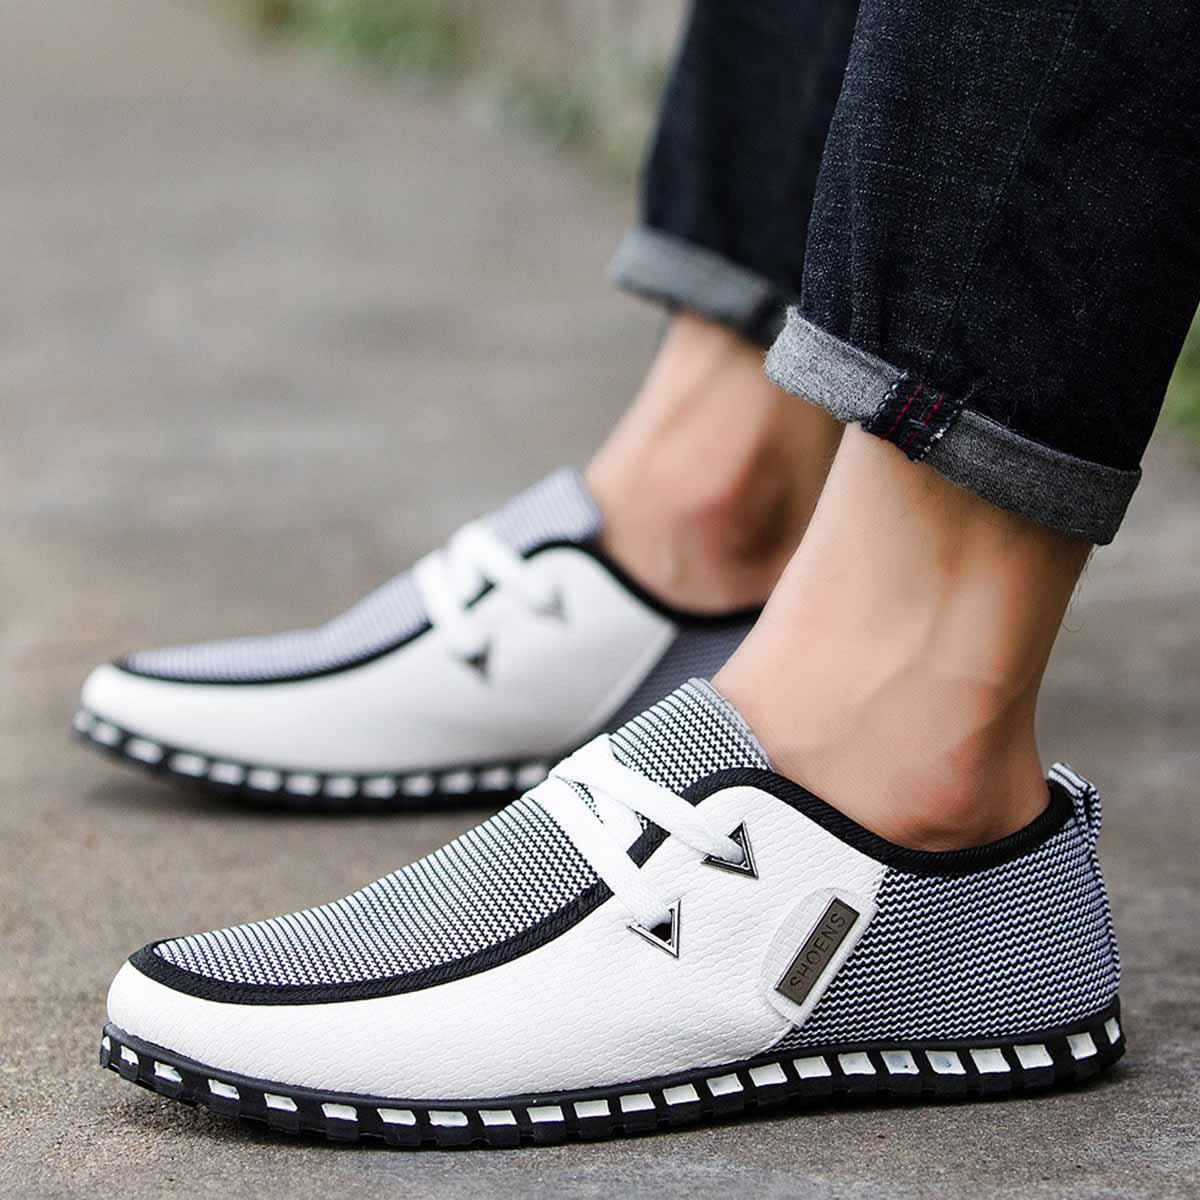 Mens Casual PU Breathable Mesh Ankle Driving Shoes Fashion Lightweight  Comfortable Slip on Outdoor Wild Tide Flat Shoes Online with  45.45 Pair on  ... cc045e075127